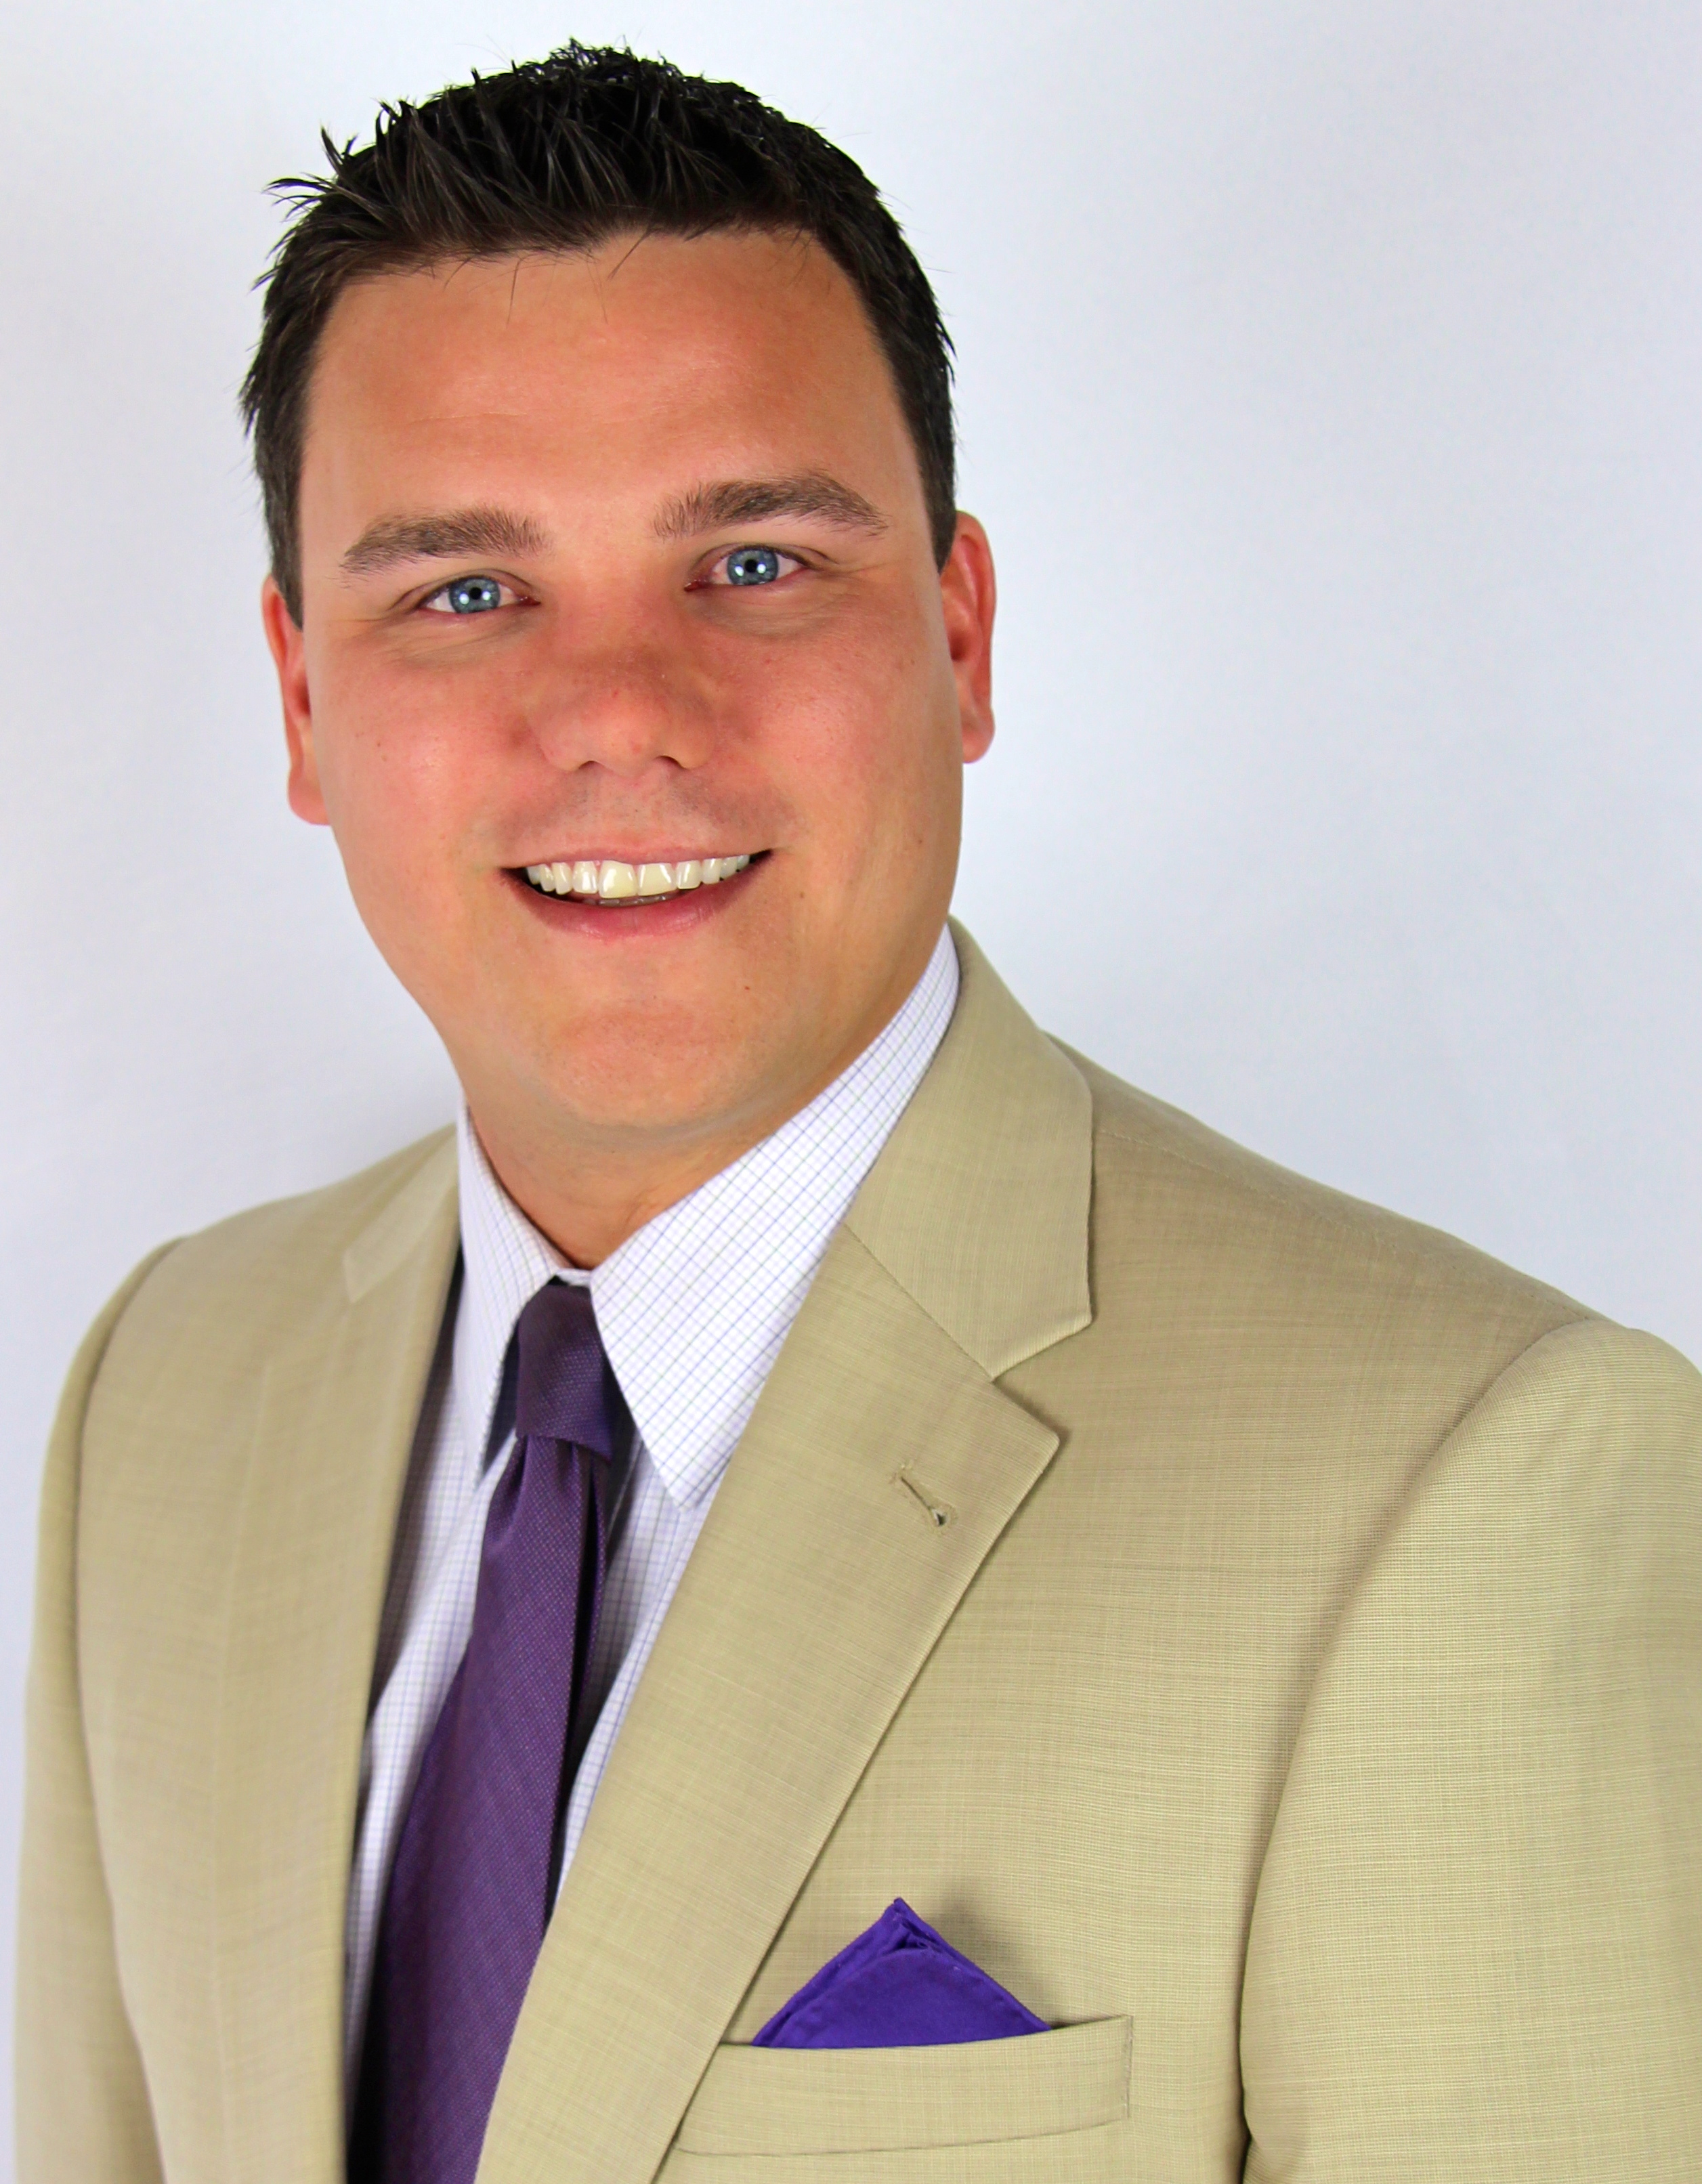 Justin Blews, financial advisor Doral FL